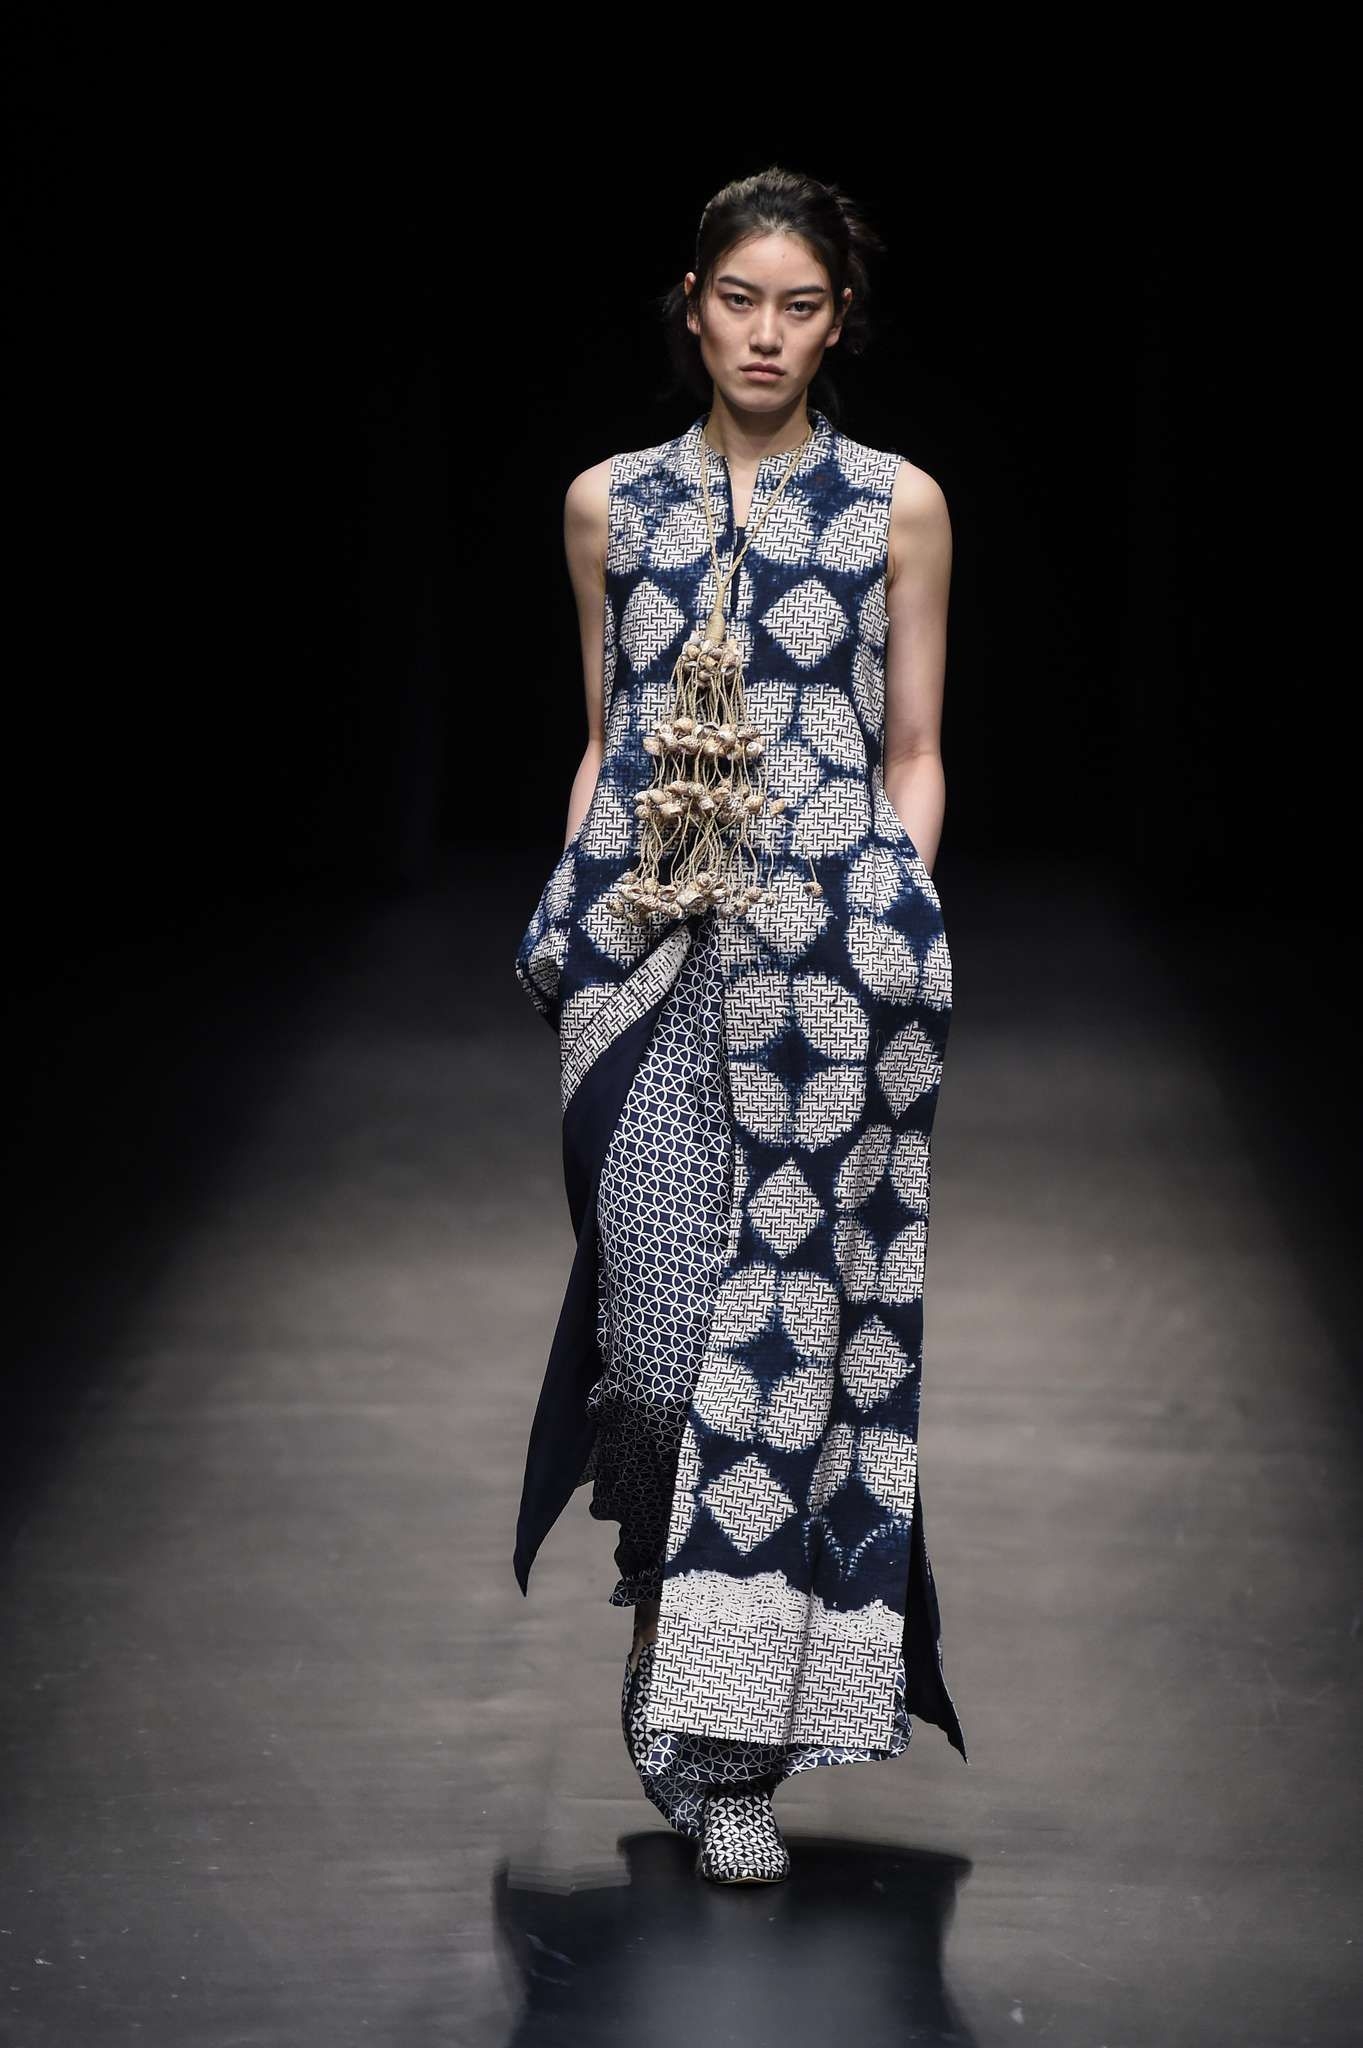 13be98ebd122 Indonesia Fashion Week - Fall 2018 Tokyo | Things to Wear in 2019 ...